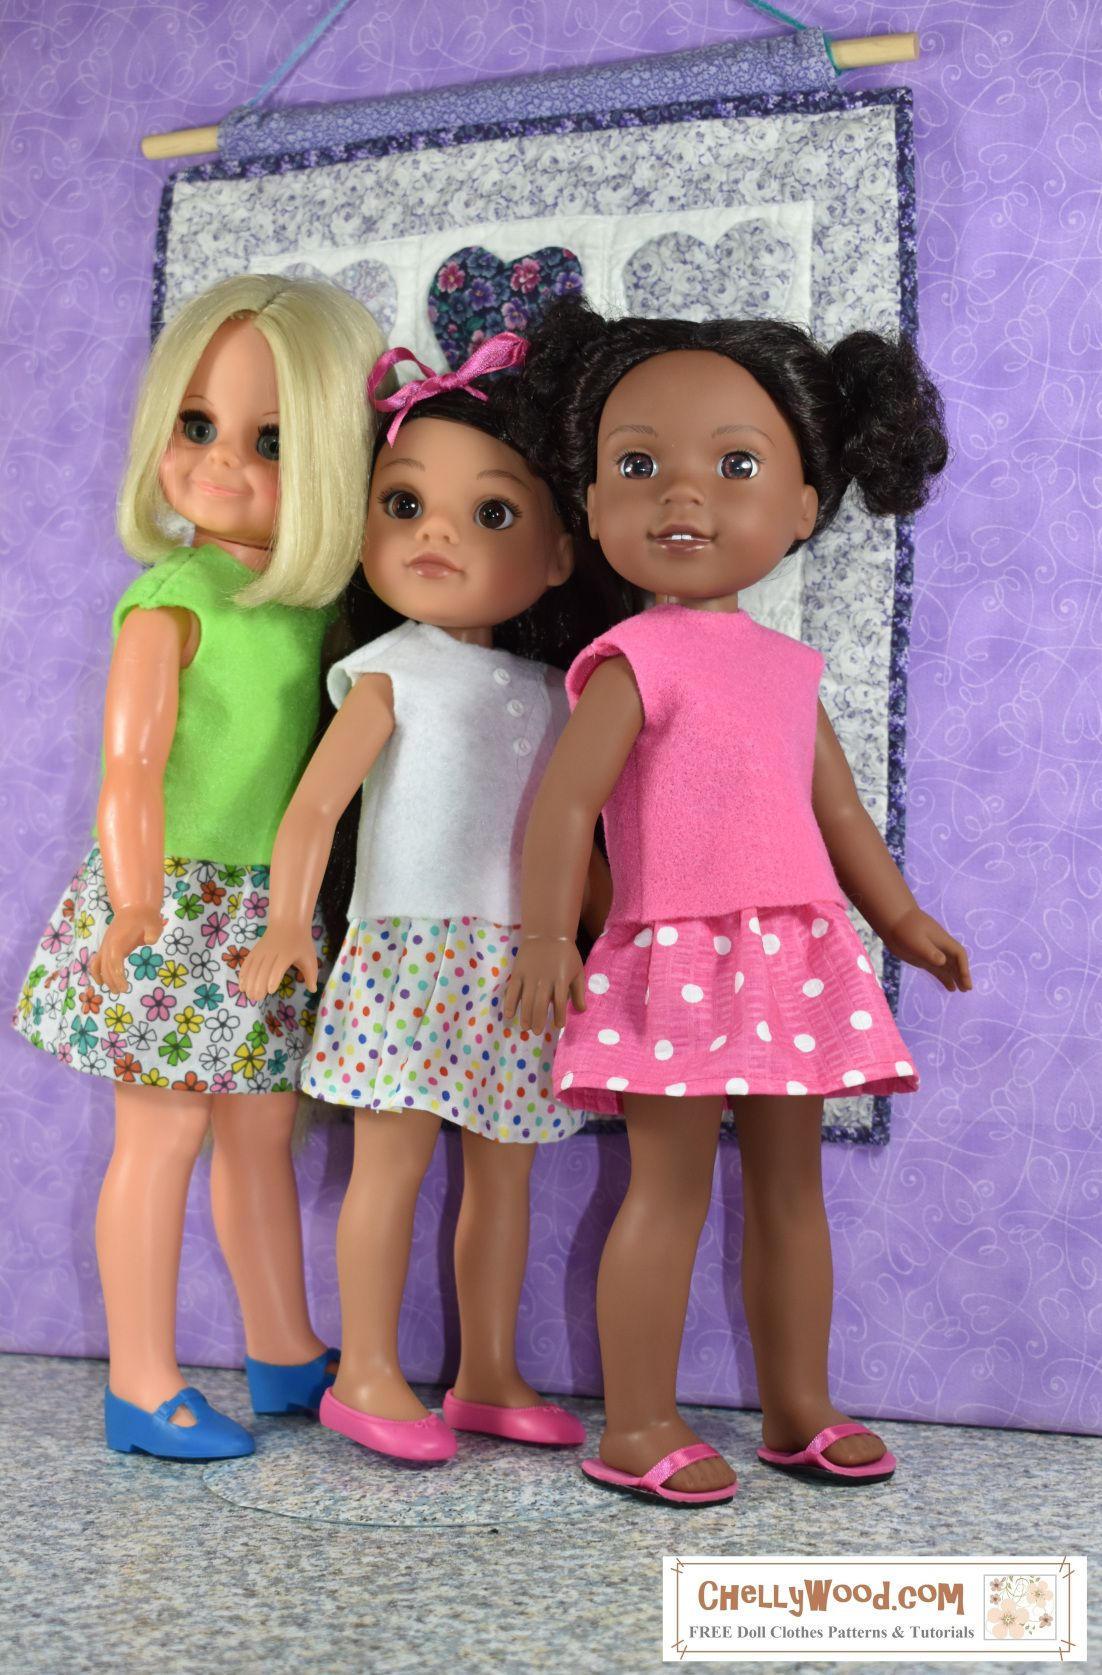 Free printable sewing patterns for 14inch, 15inch, and